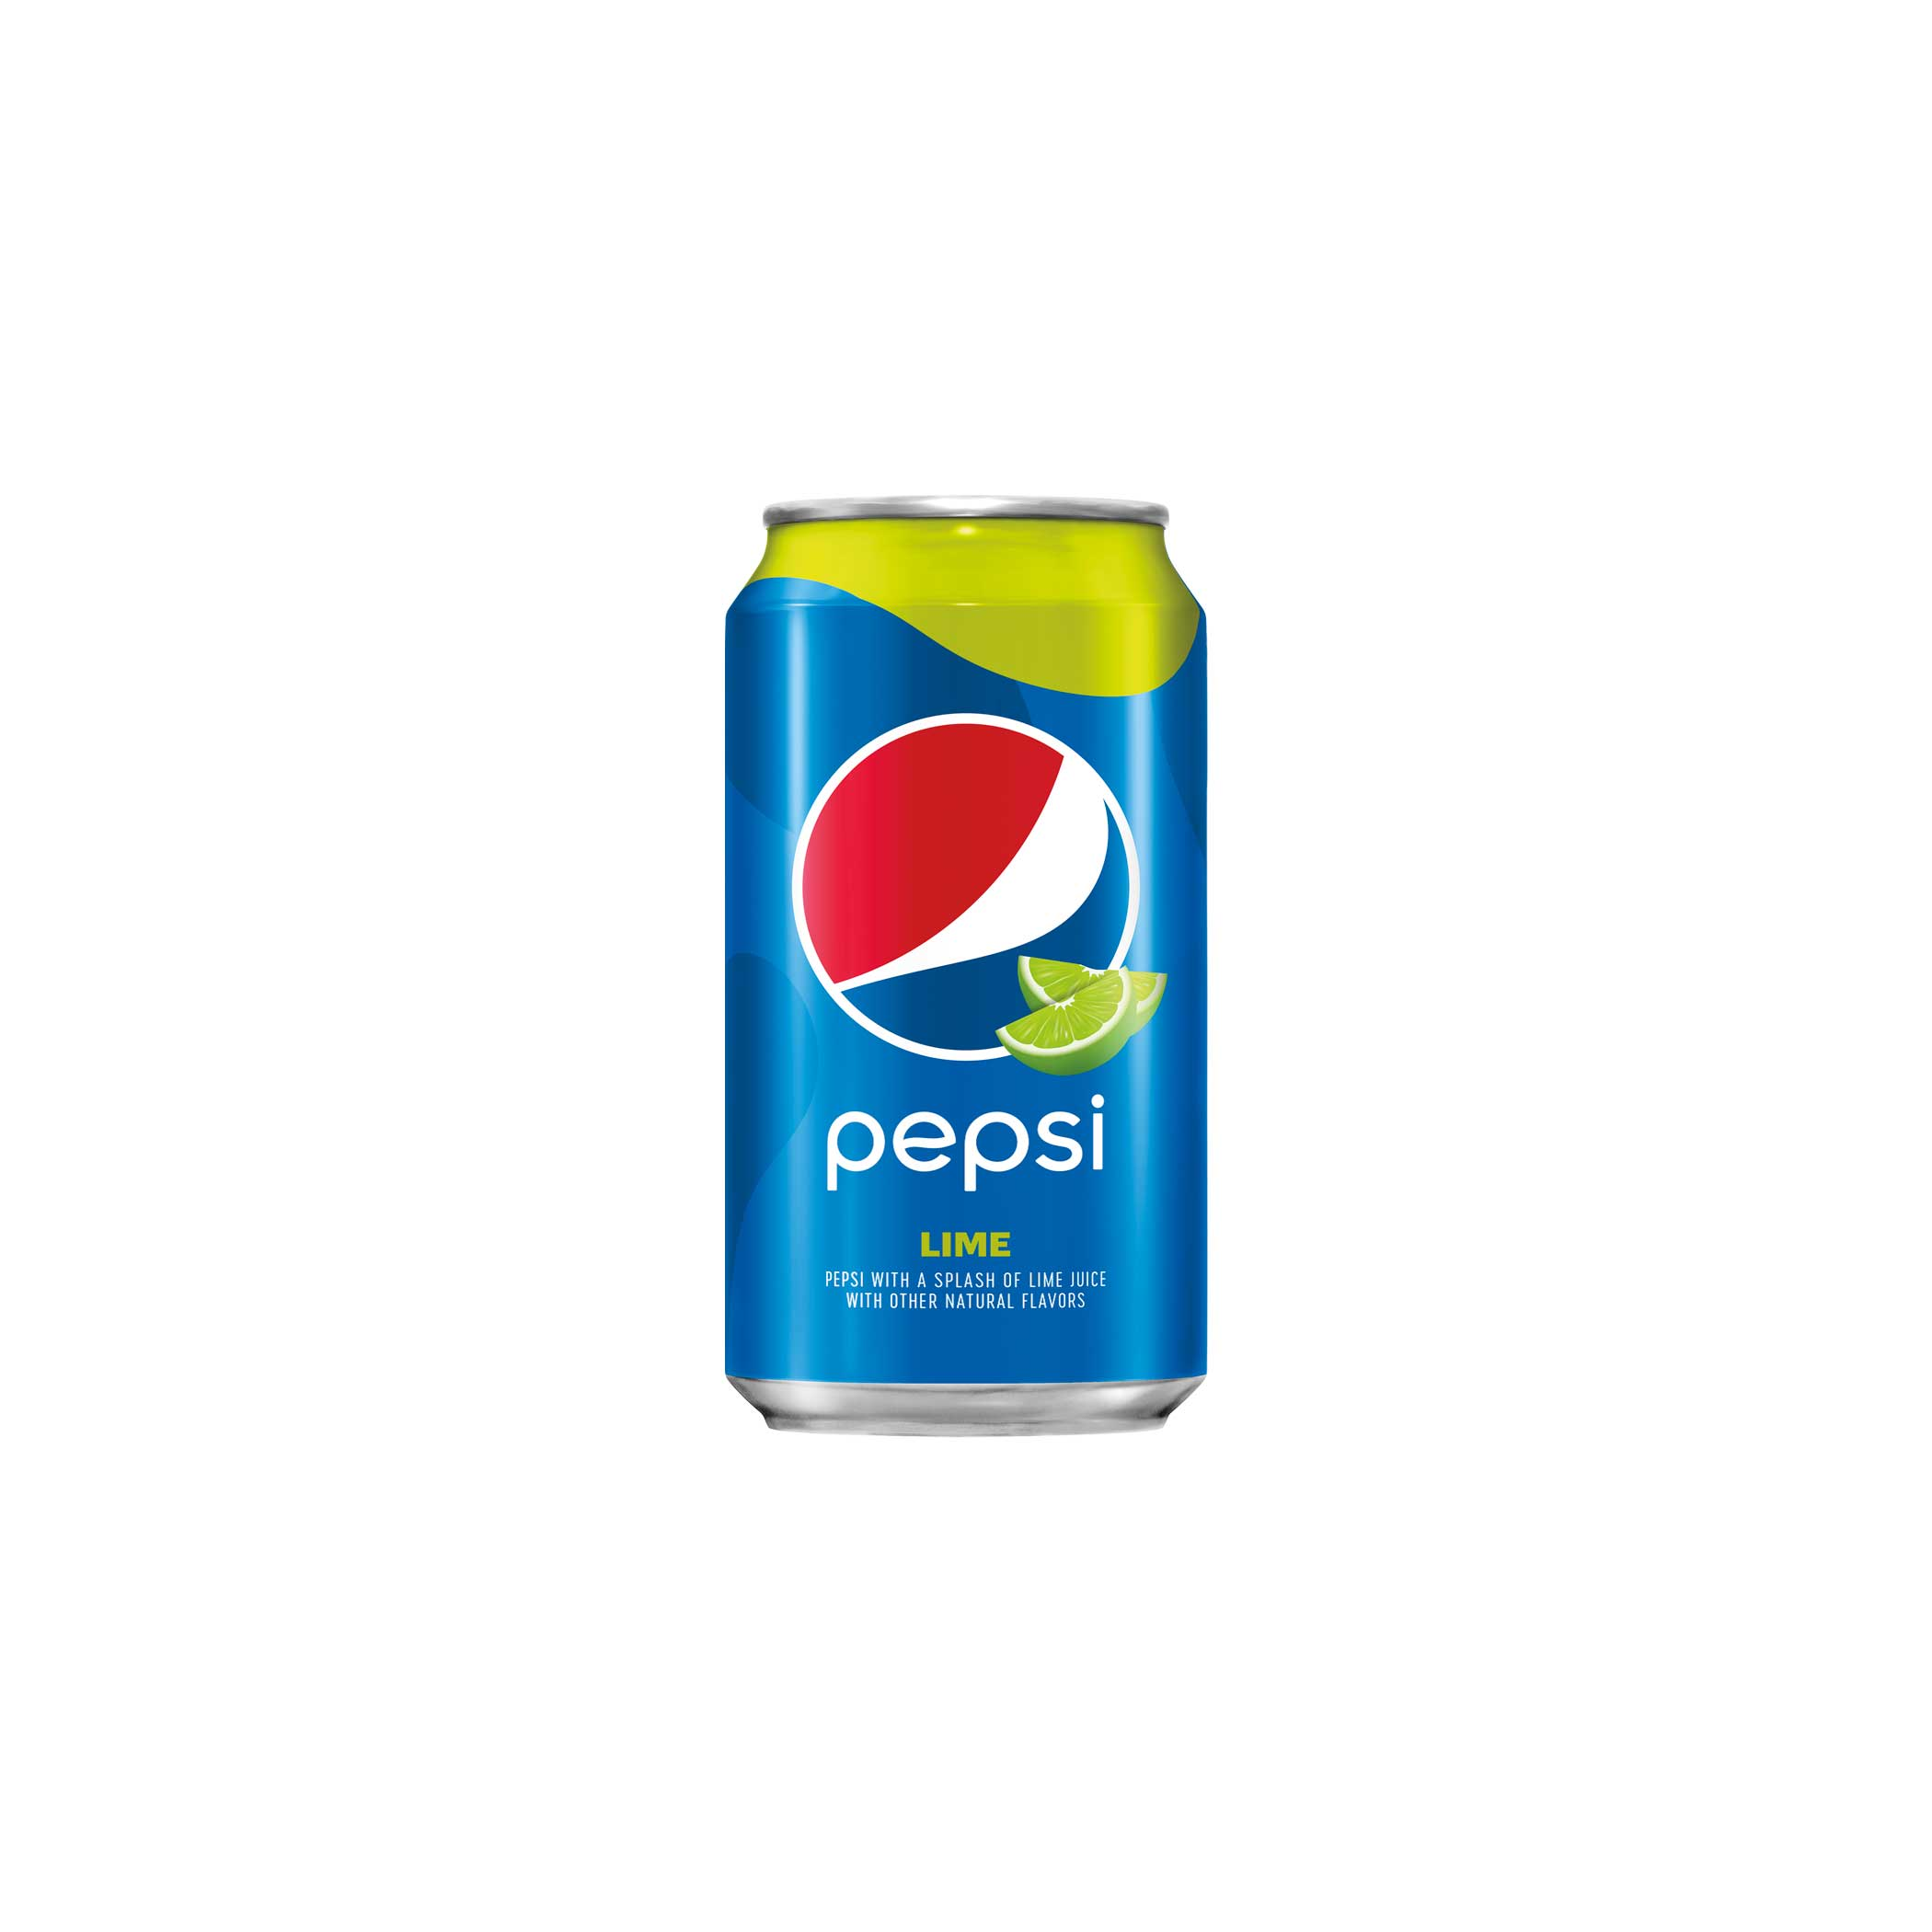 Pepsi® Lime: A splash of delicious lime juice paired with the bold and refreshing Pepsi you know and love